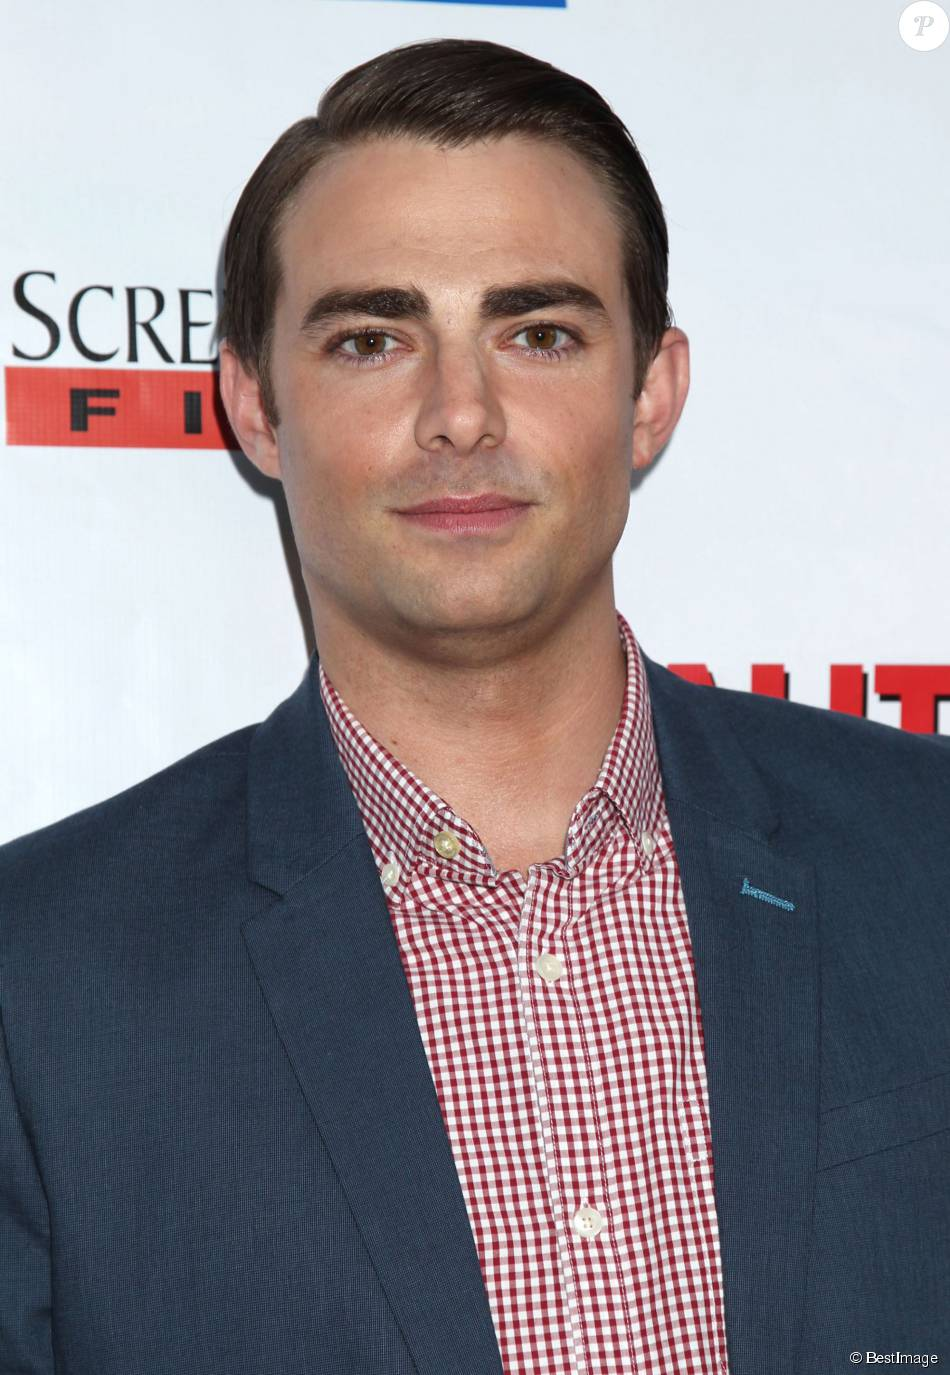 jonatthan bennett article Jonathan bennett competed on season 19 of dancing with the stars onstage,  he may have looked fairly smooth, but a recent video reveals.